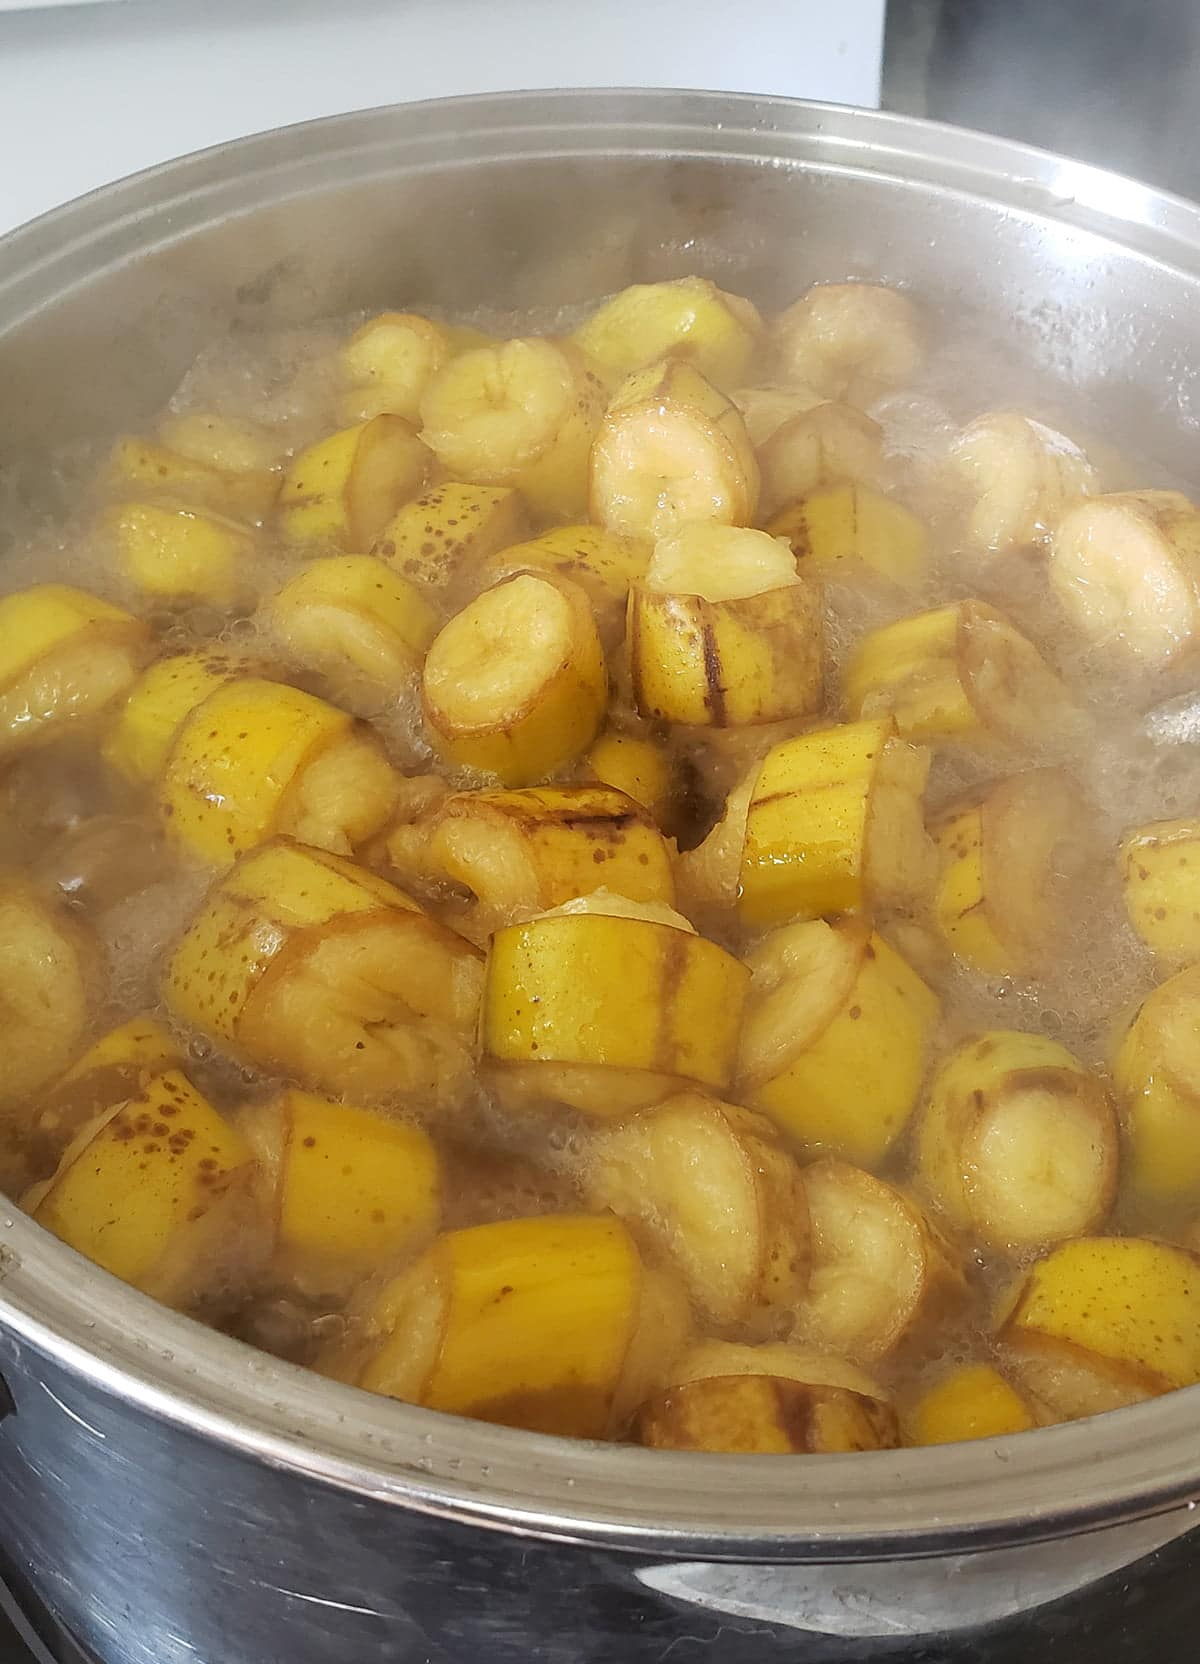 A large pot is full of sliced bananas.  They are puffed up from the cooking processes, and enveloped in steam.